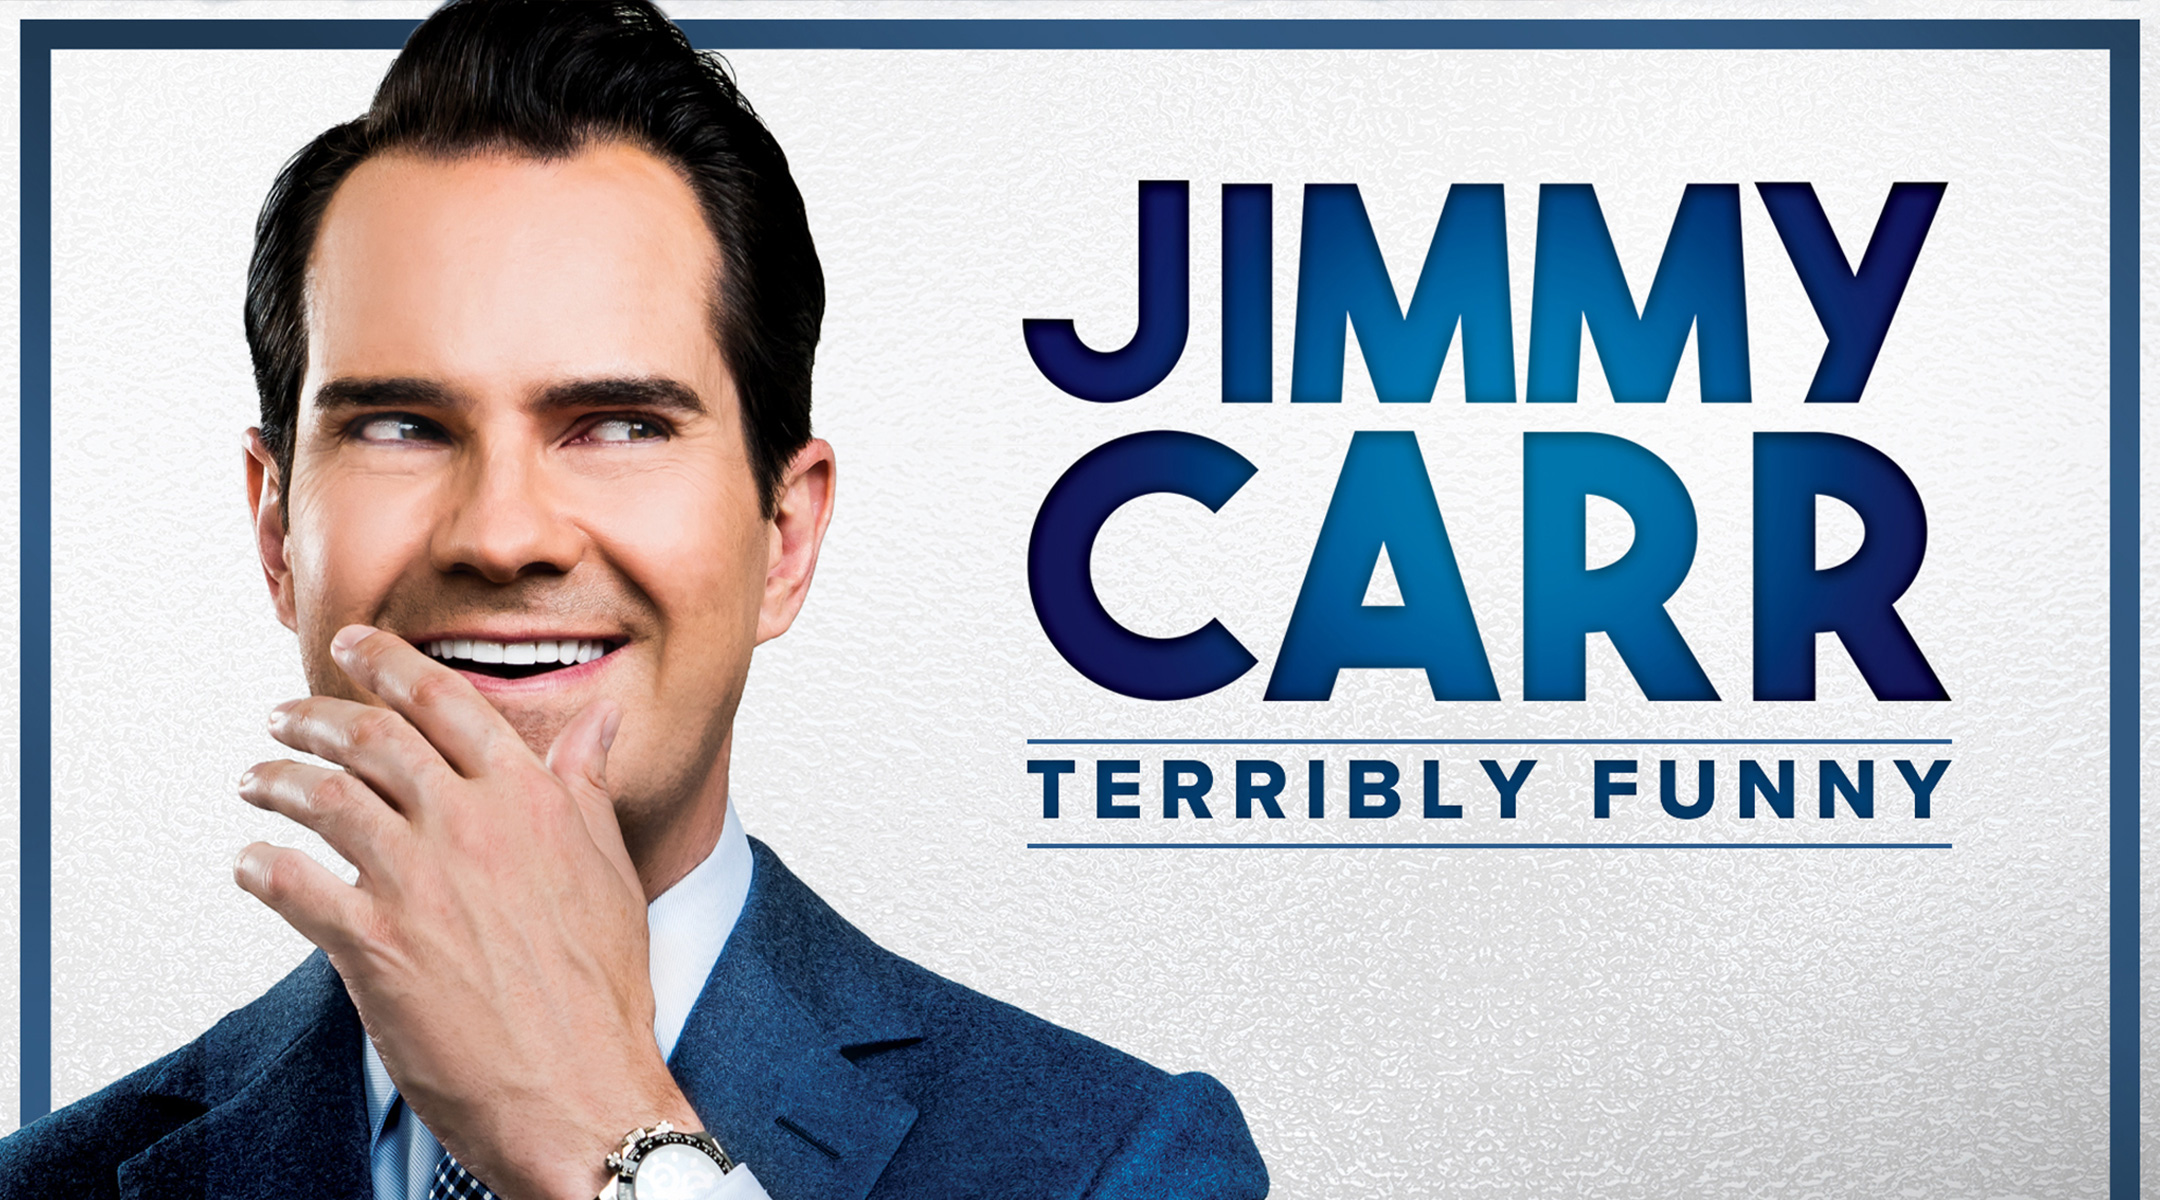 Jimmy Carr: Terribly Funny - Weston Super Mare - Late Show